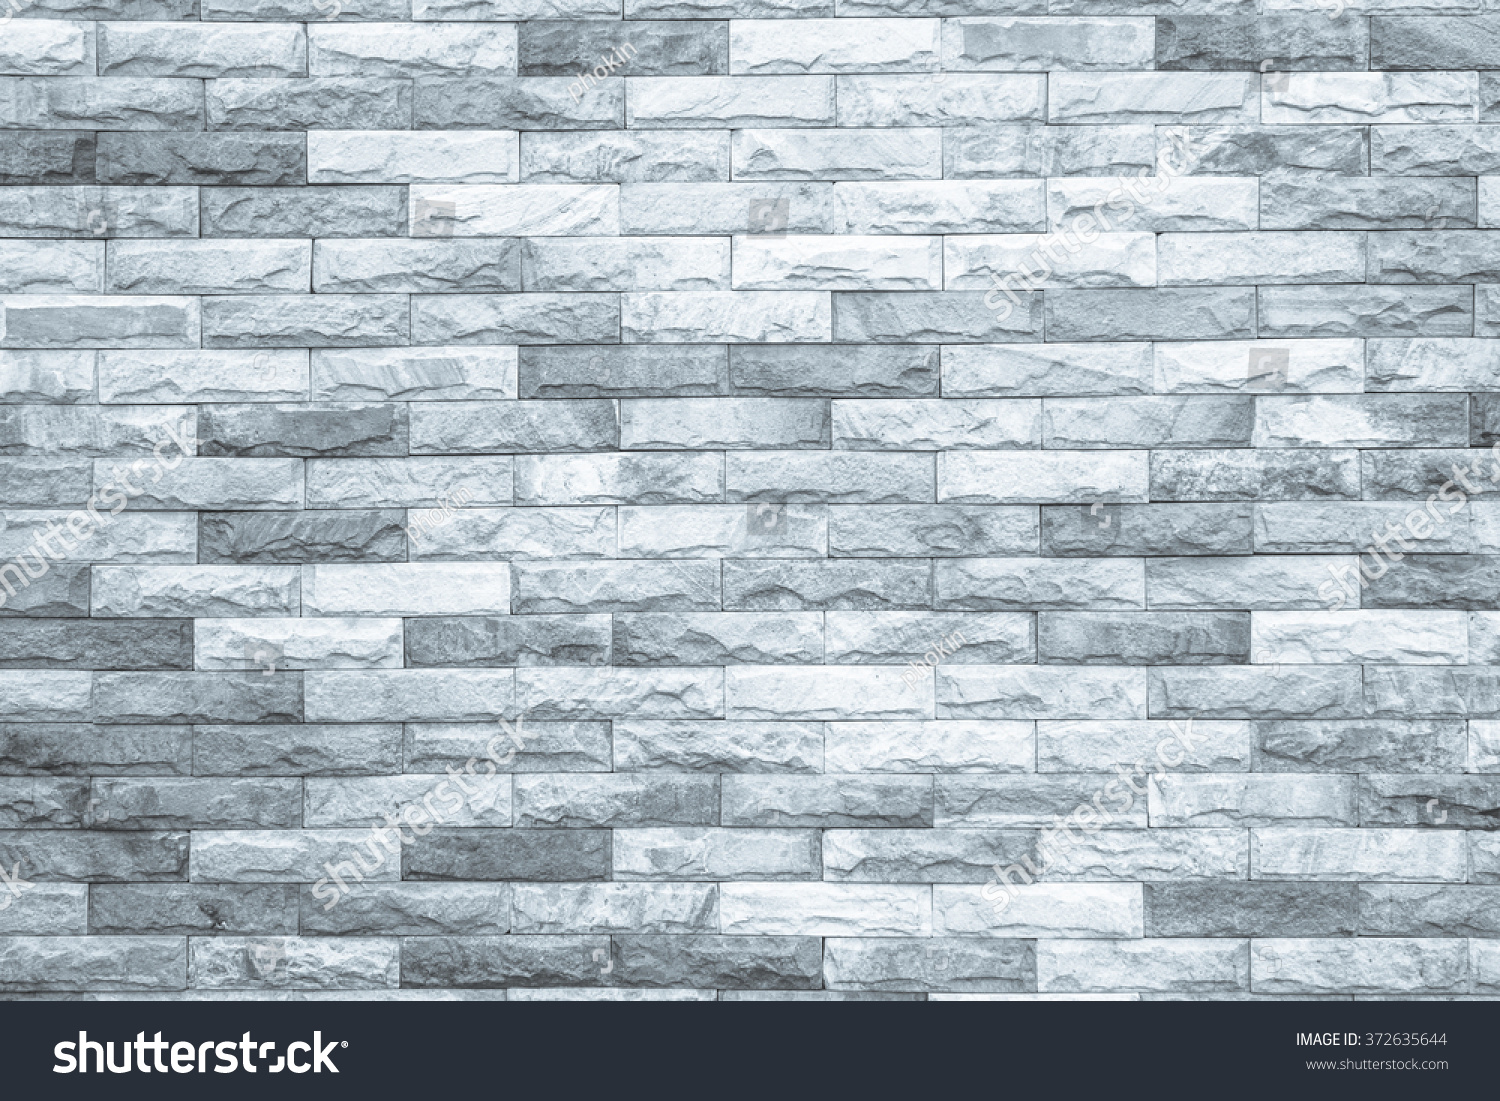 black white brick wall texture background stock photo 372635644 black and white brick wall texture background wall texture background flooring interior rock stone old